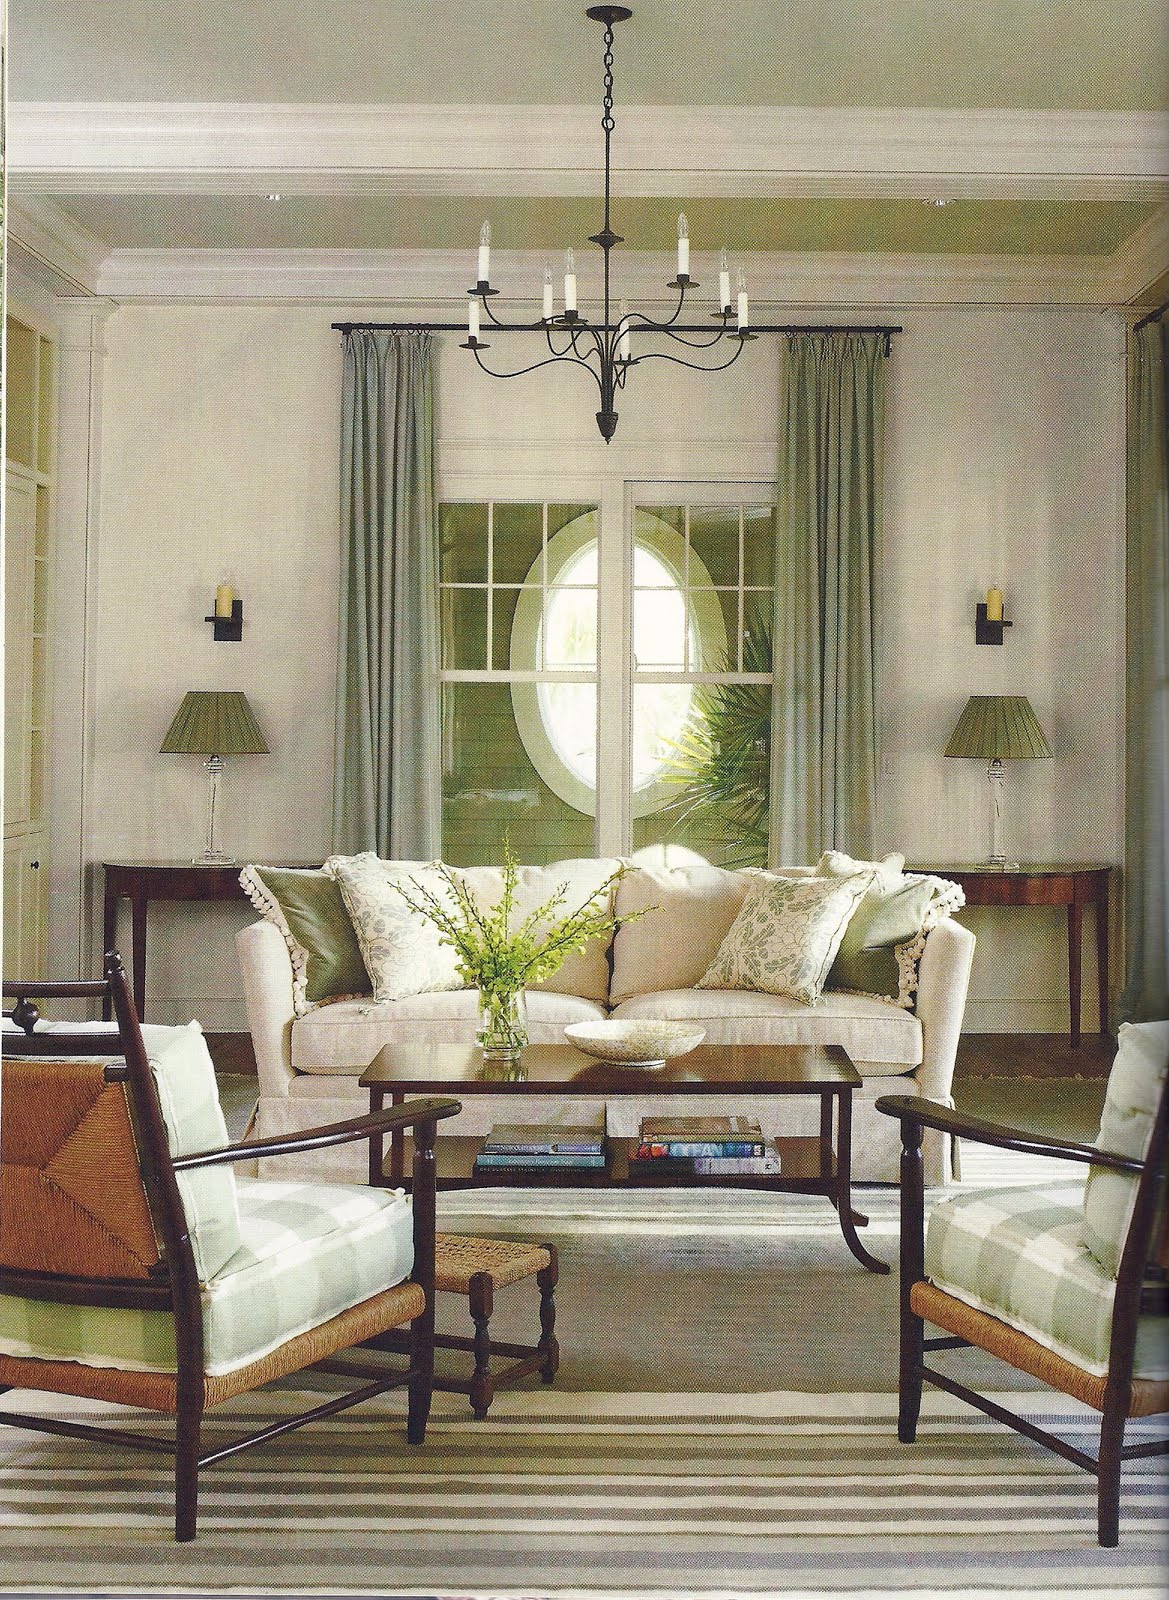 Us Interior Designs Jacques Grange: US Interior Designs: Southern Beauty